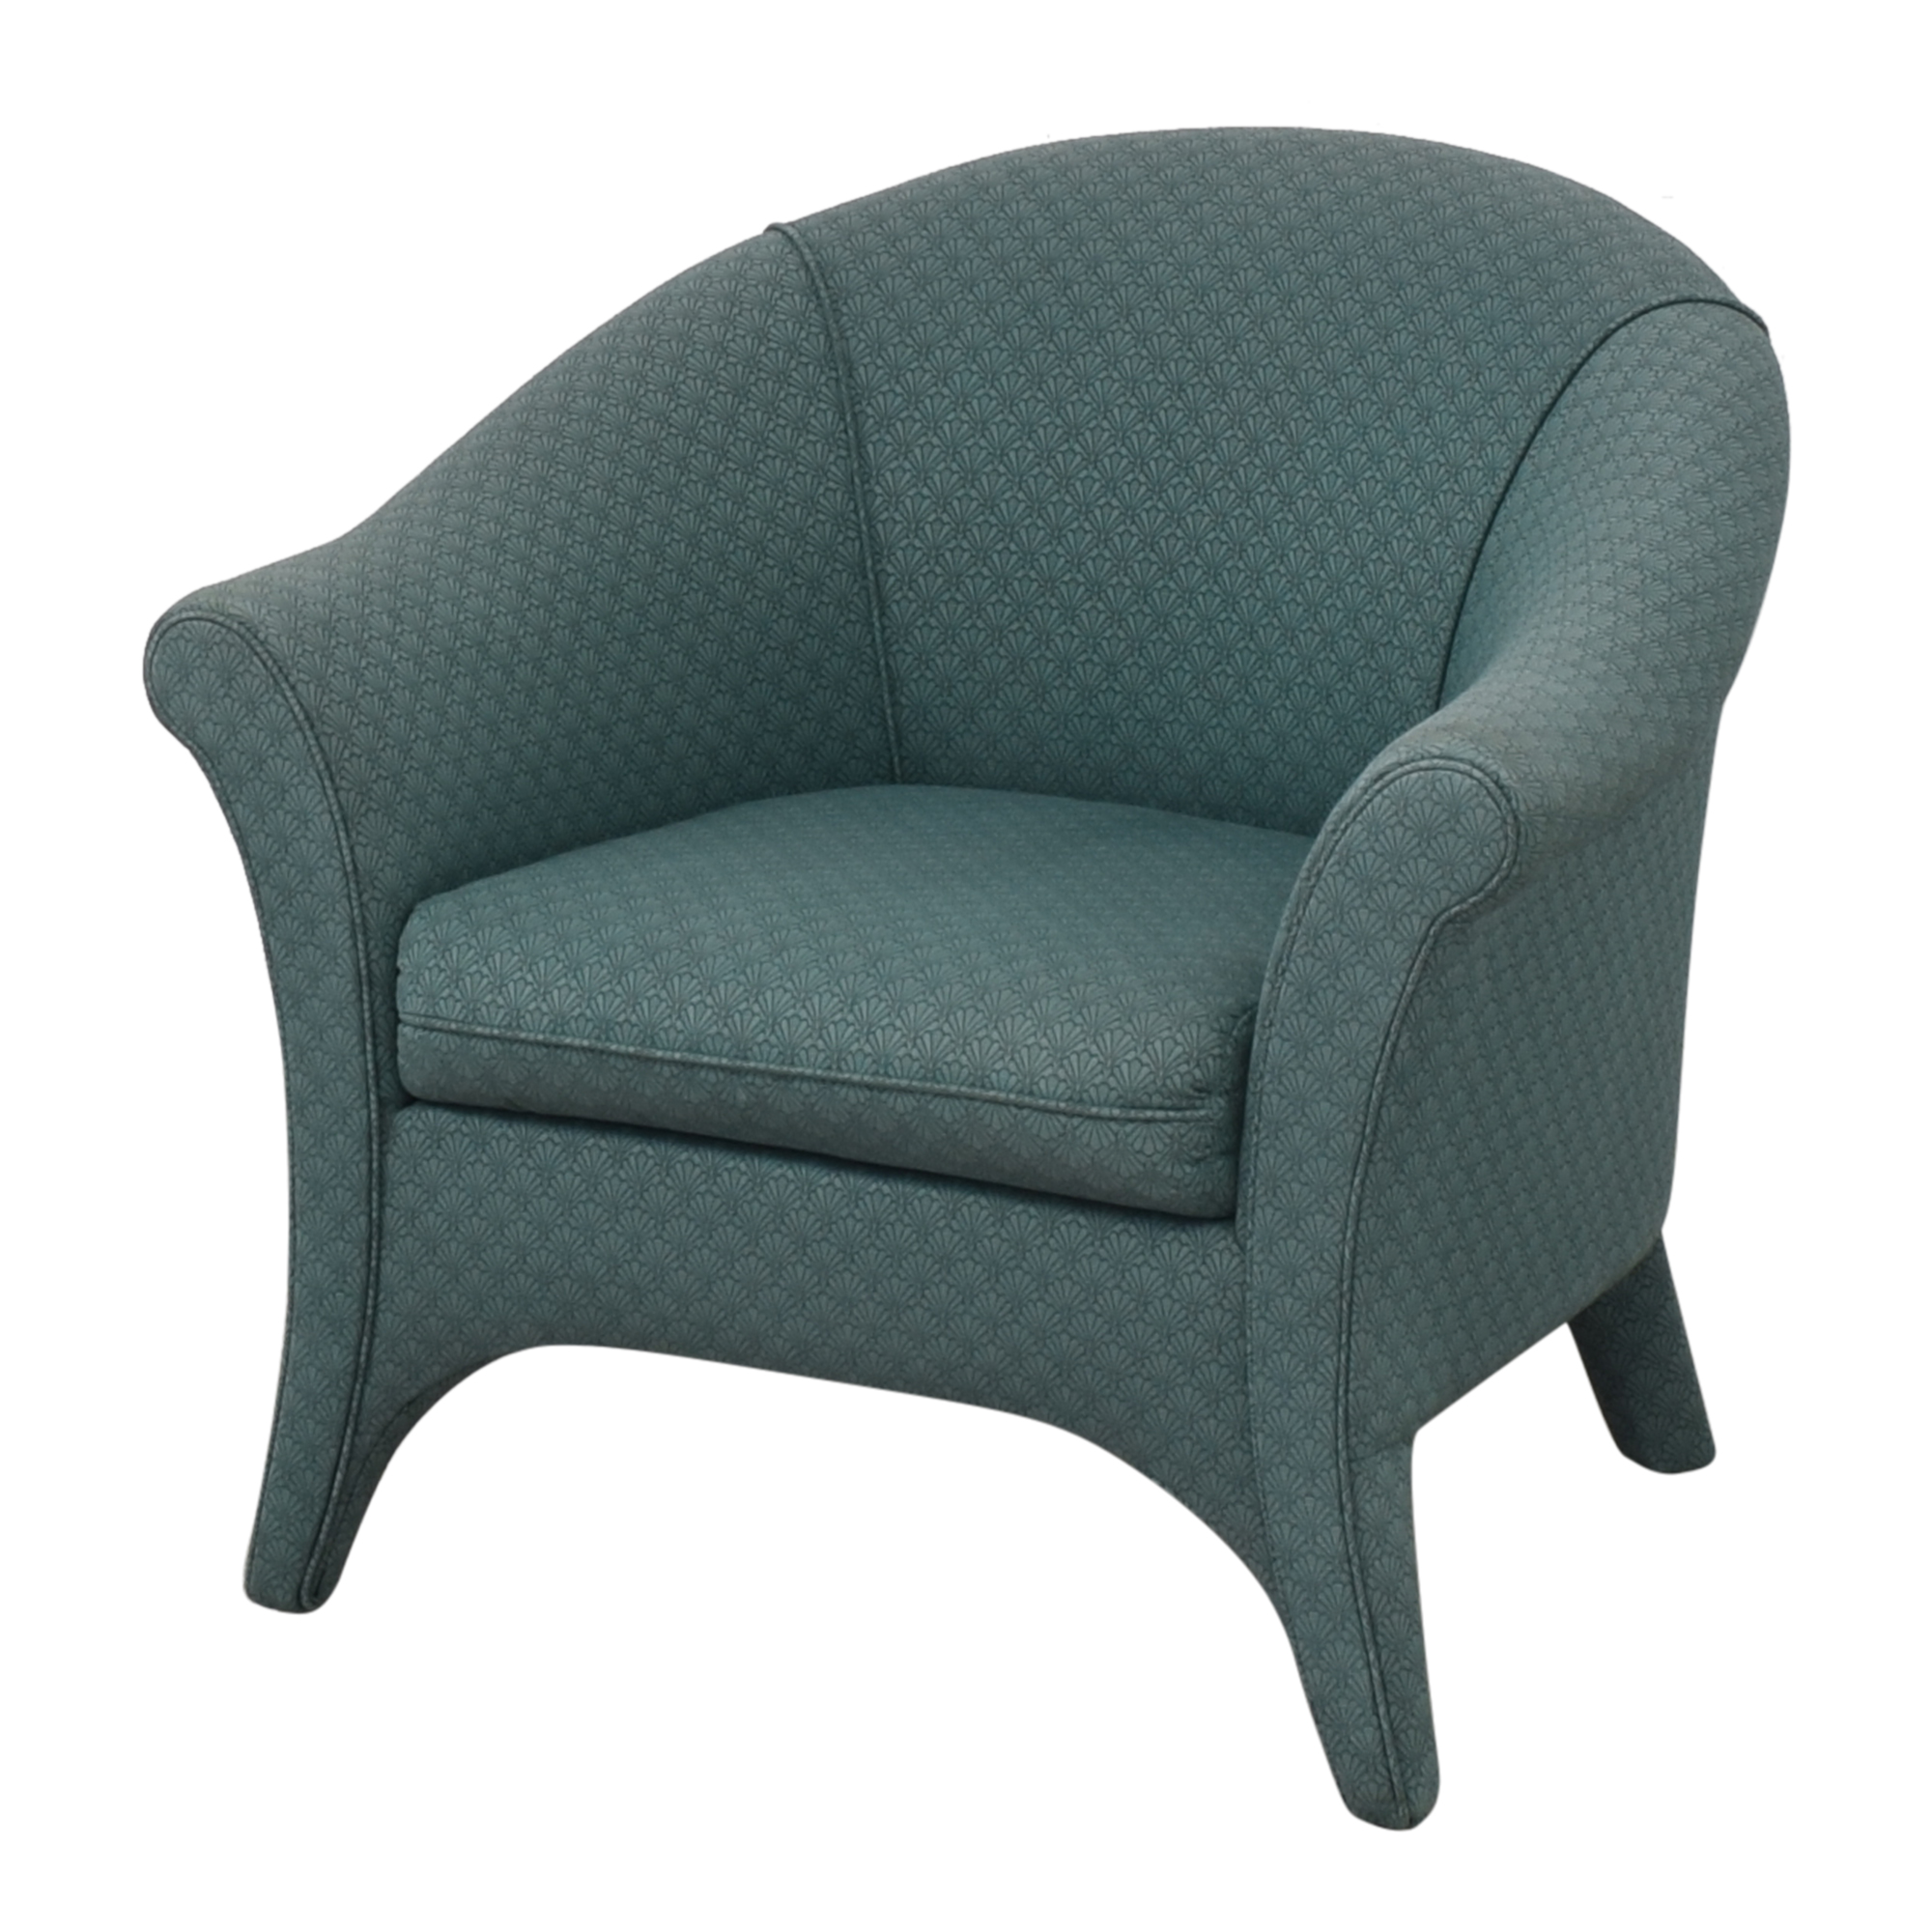 Crate & Barrel Crate & Barrel Upholstered Armchair used